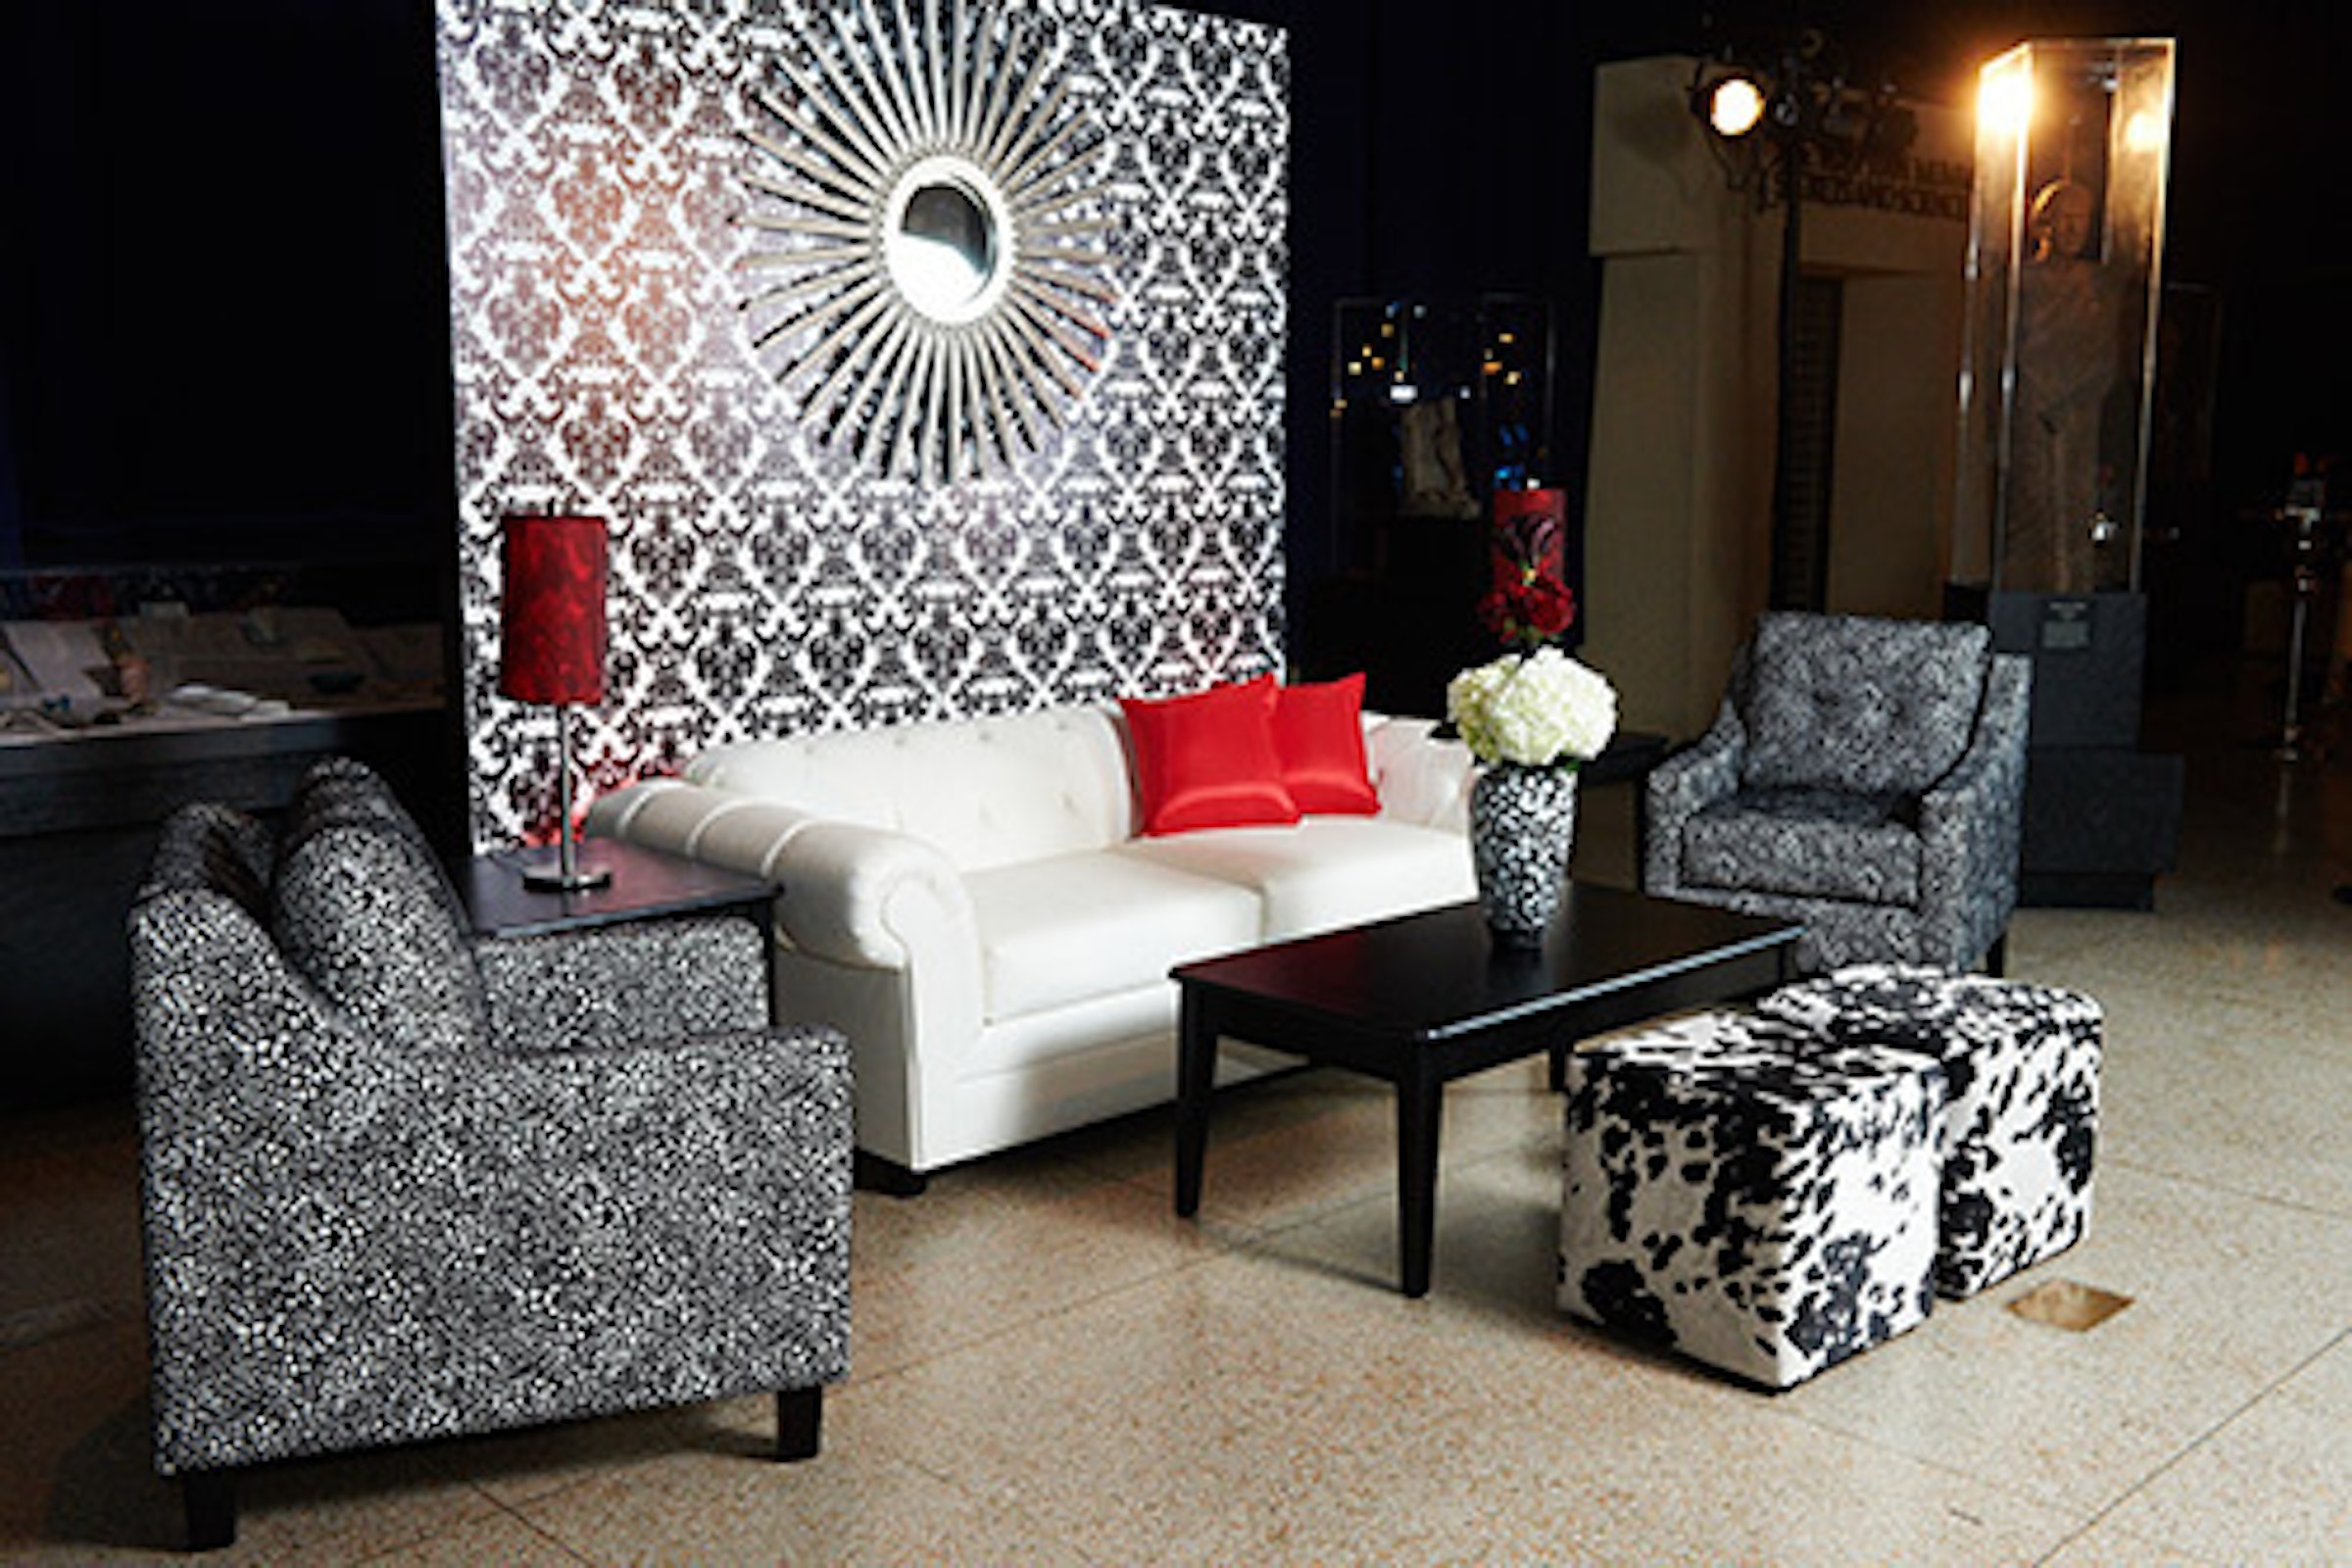 AFR Event Furnishings in Beyond Dallas